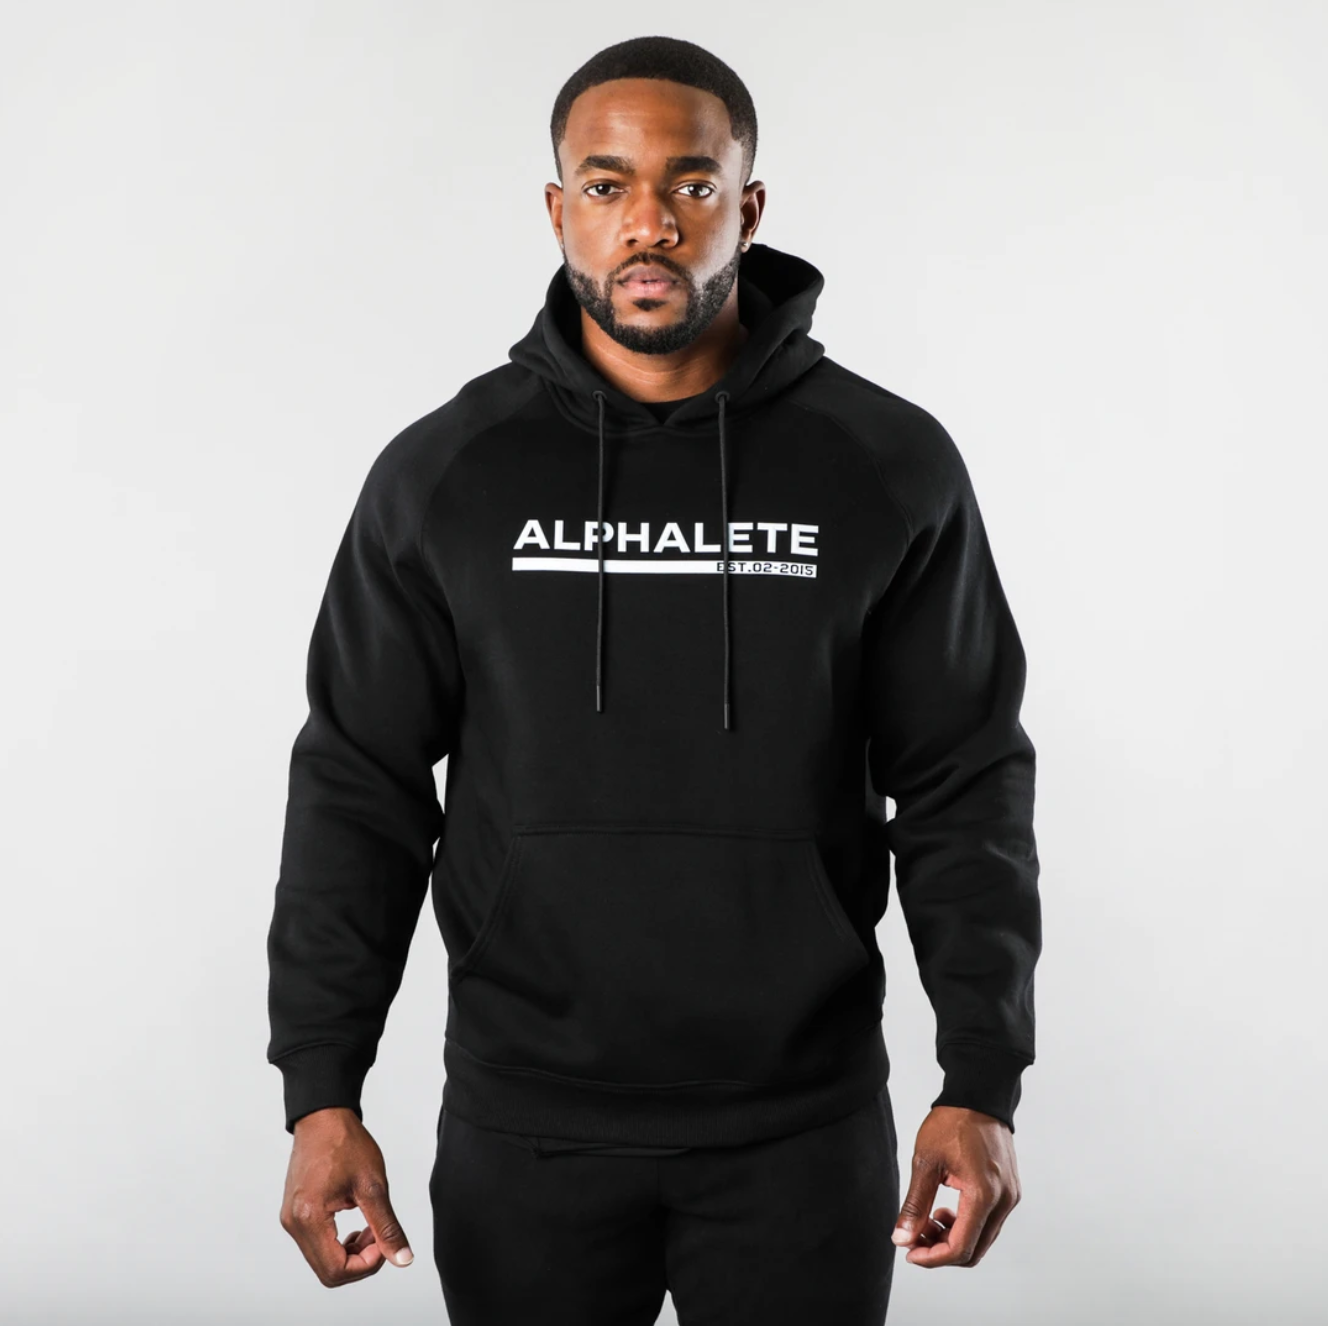 A male model poses in an Alphalete-branded hoodie.